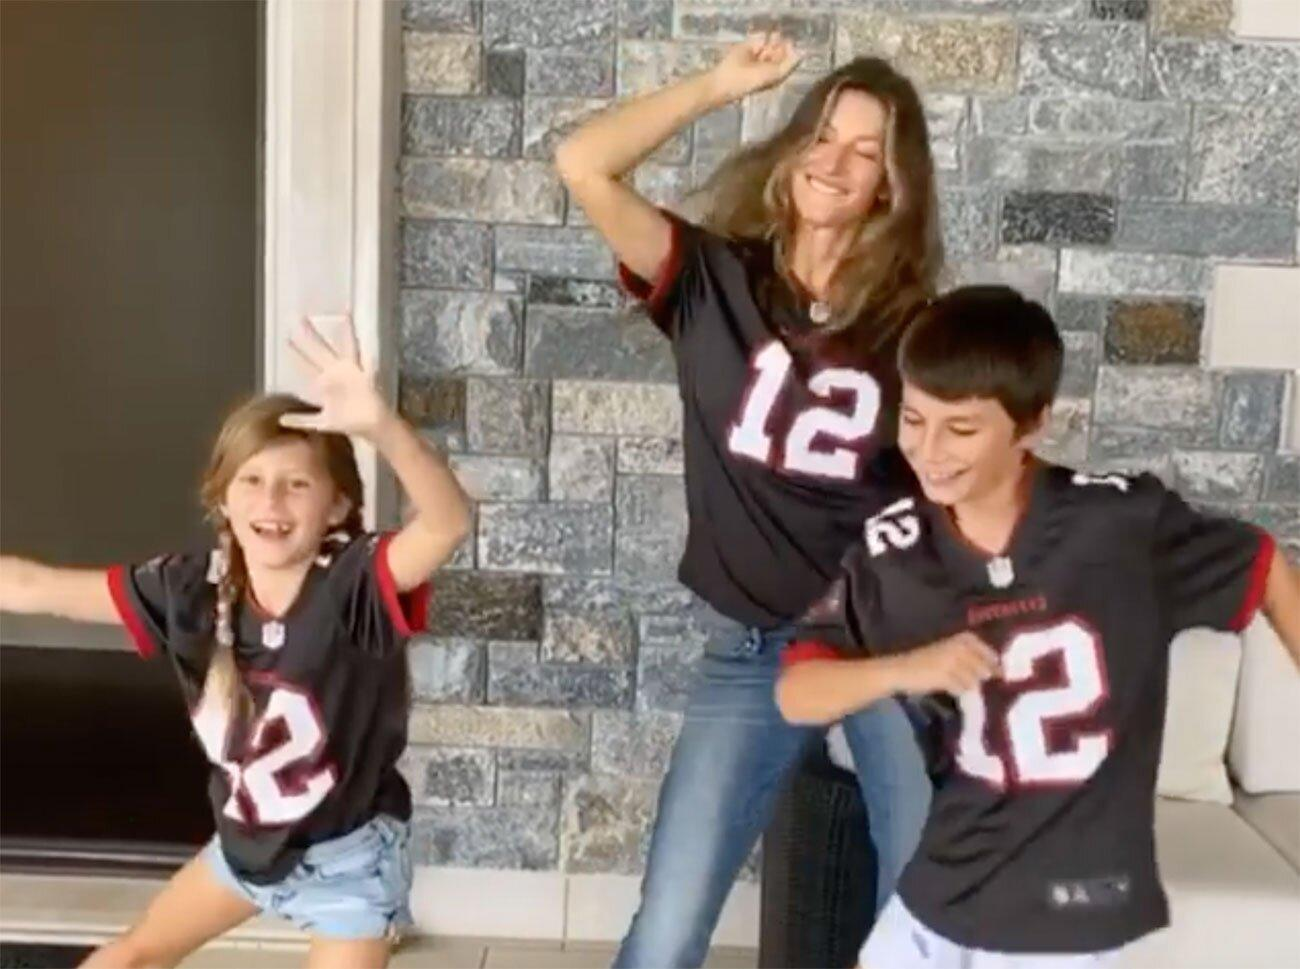 Gisele Bundchen And Her Kids Cheer On Tom Brady From Home In Buccaneers Jerseys Let S Go Papa